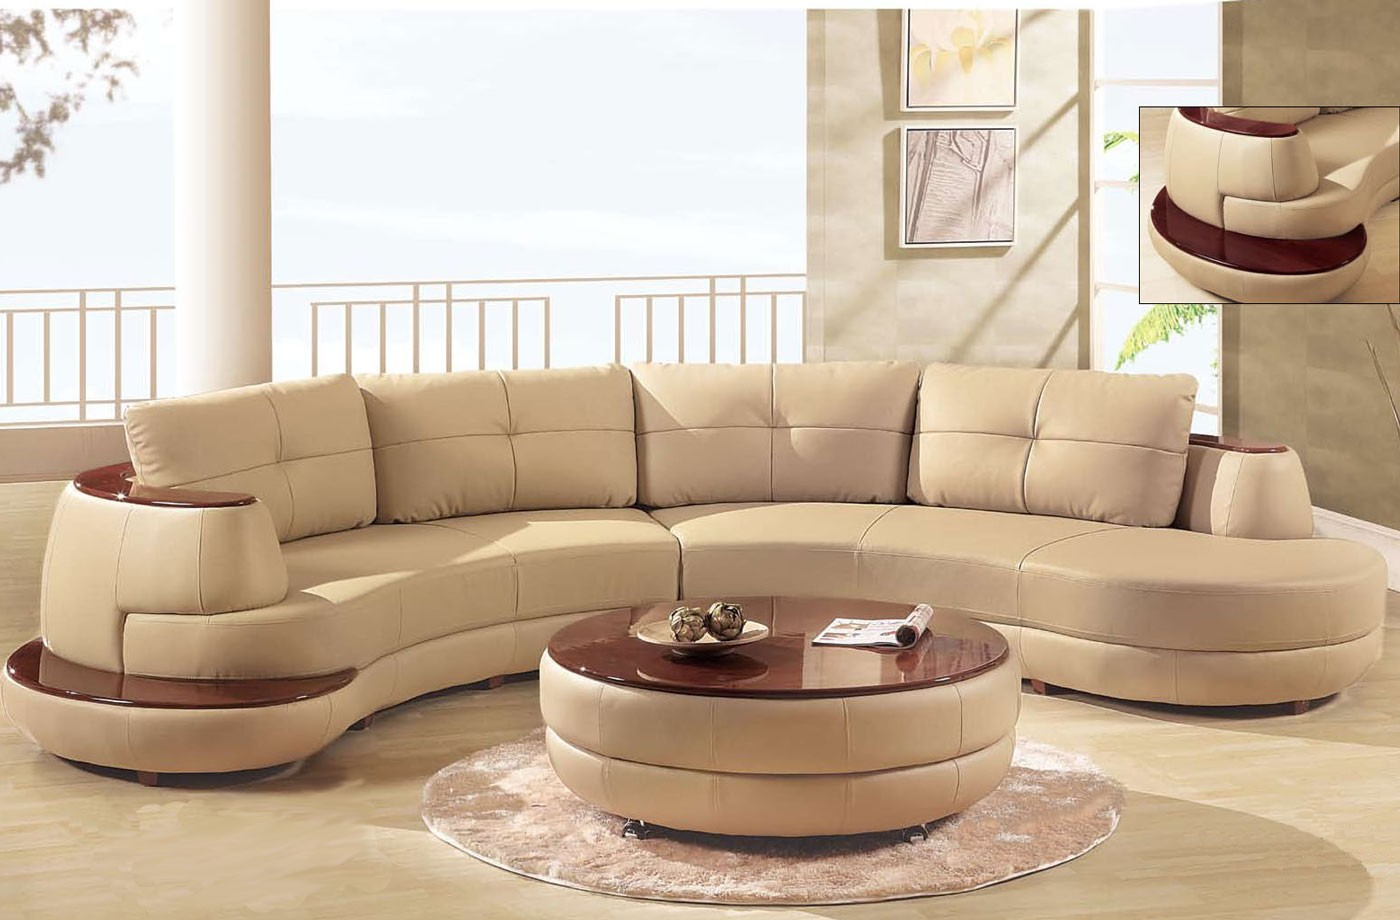 Shopping Online For The Best Cheap Sectional Sofas Under